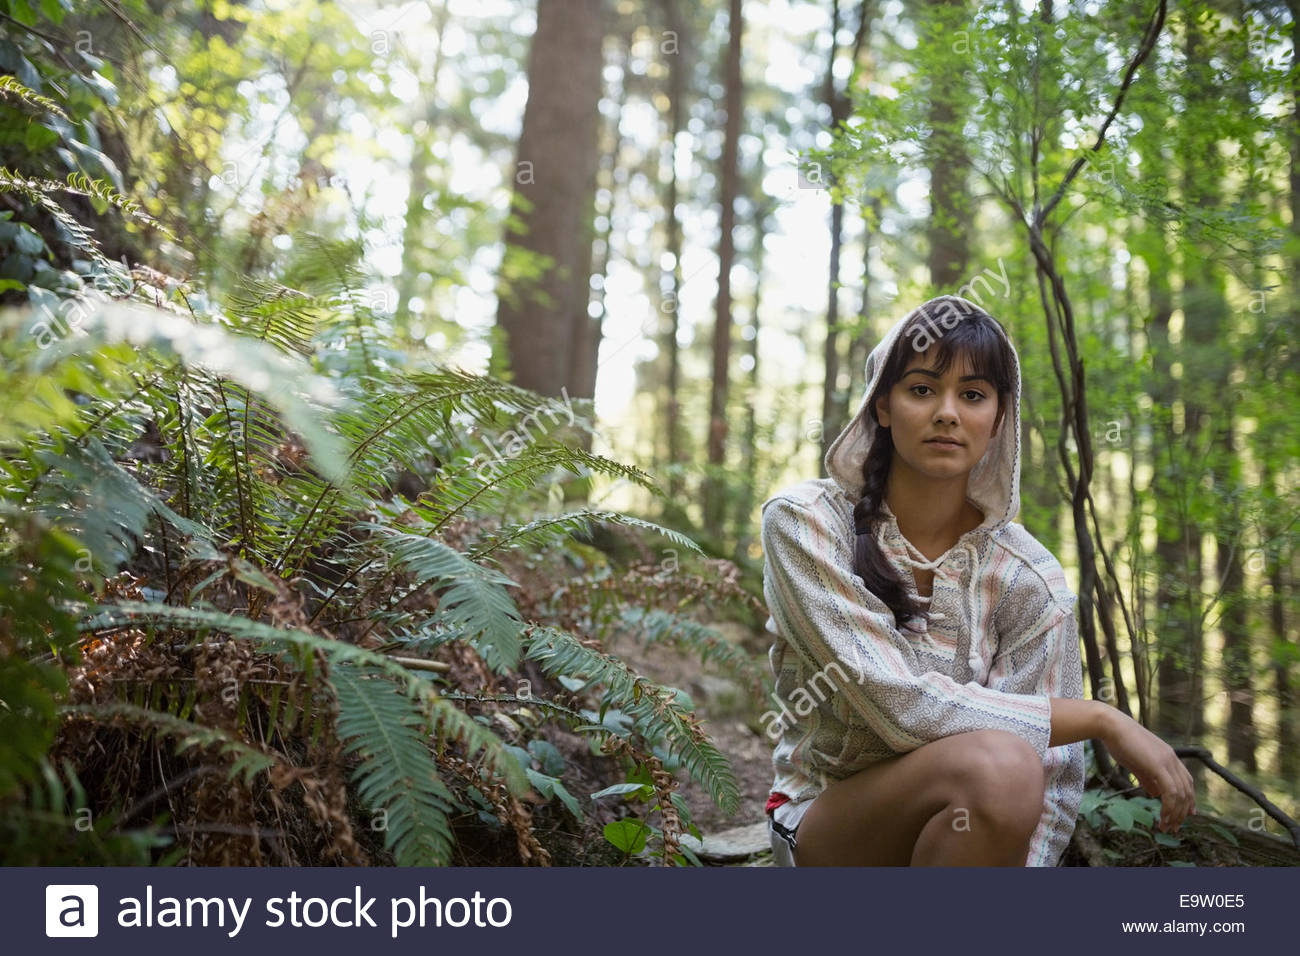 Portrait of young woman wearing hoody in woods - Stock Image